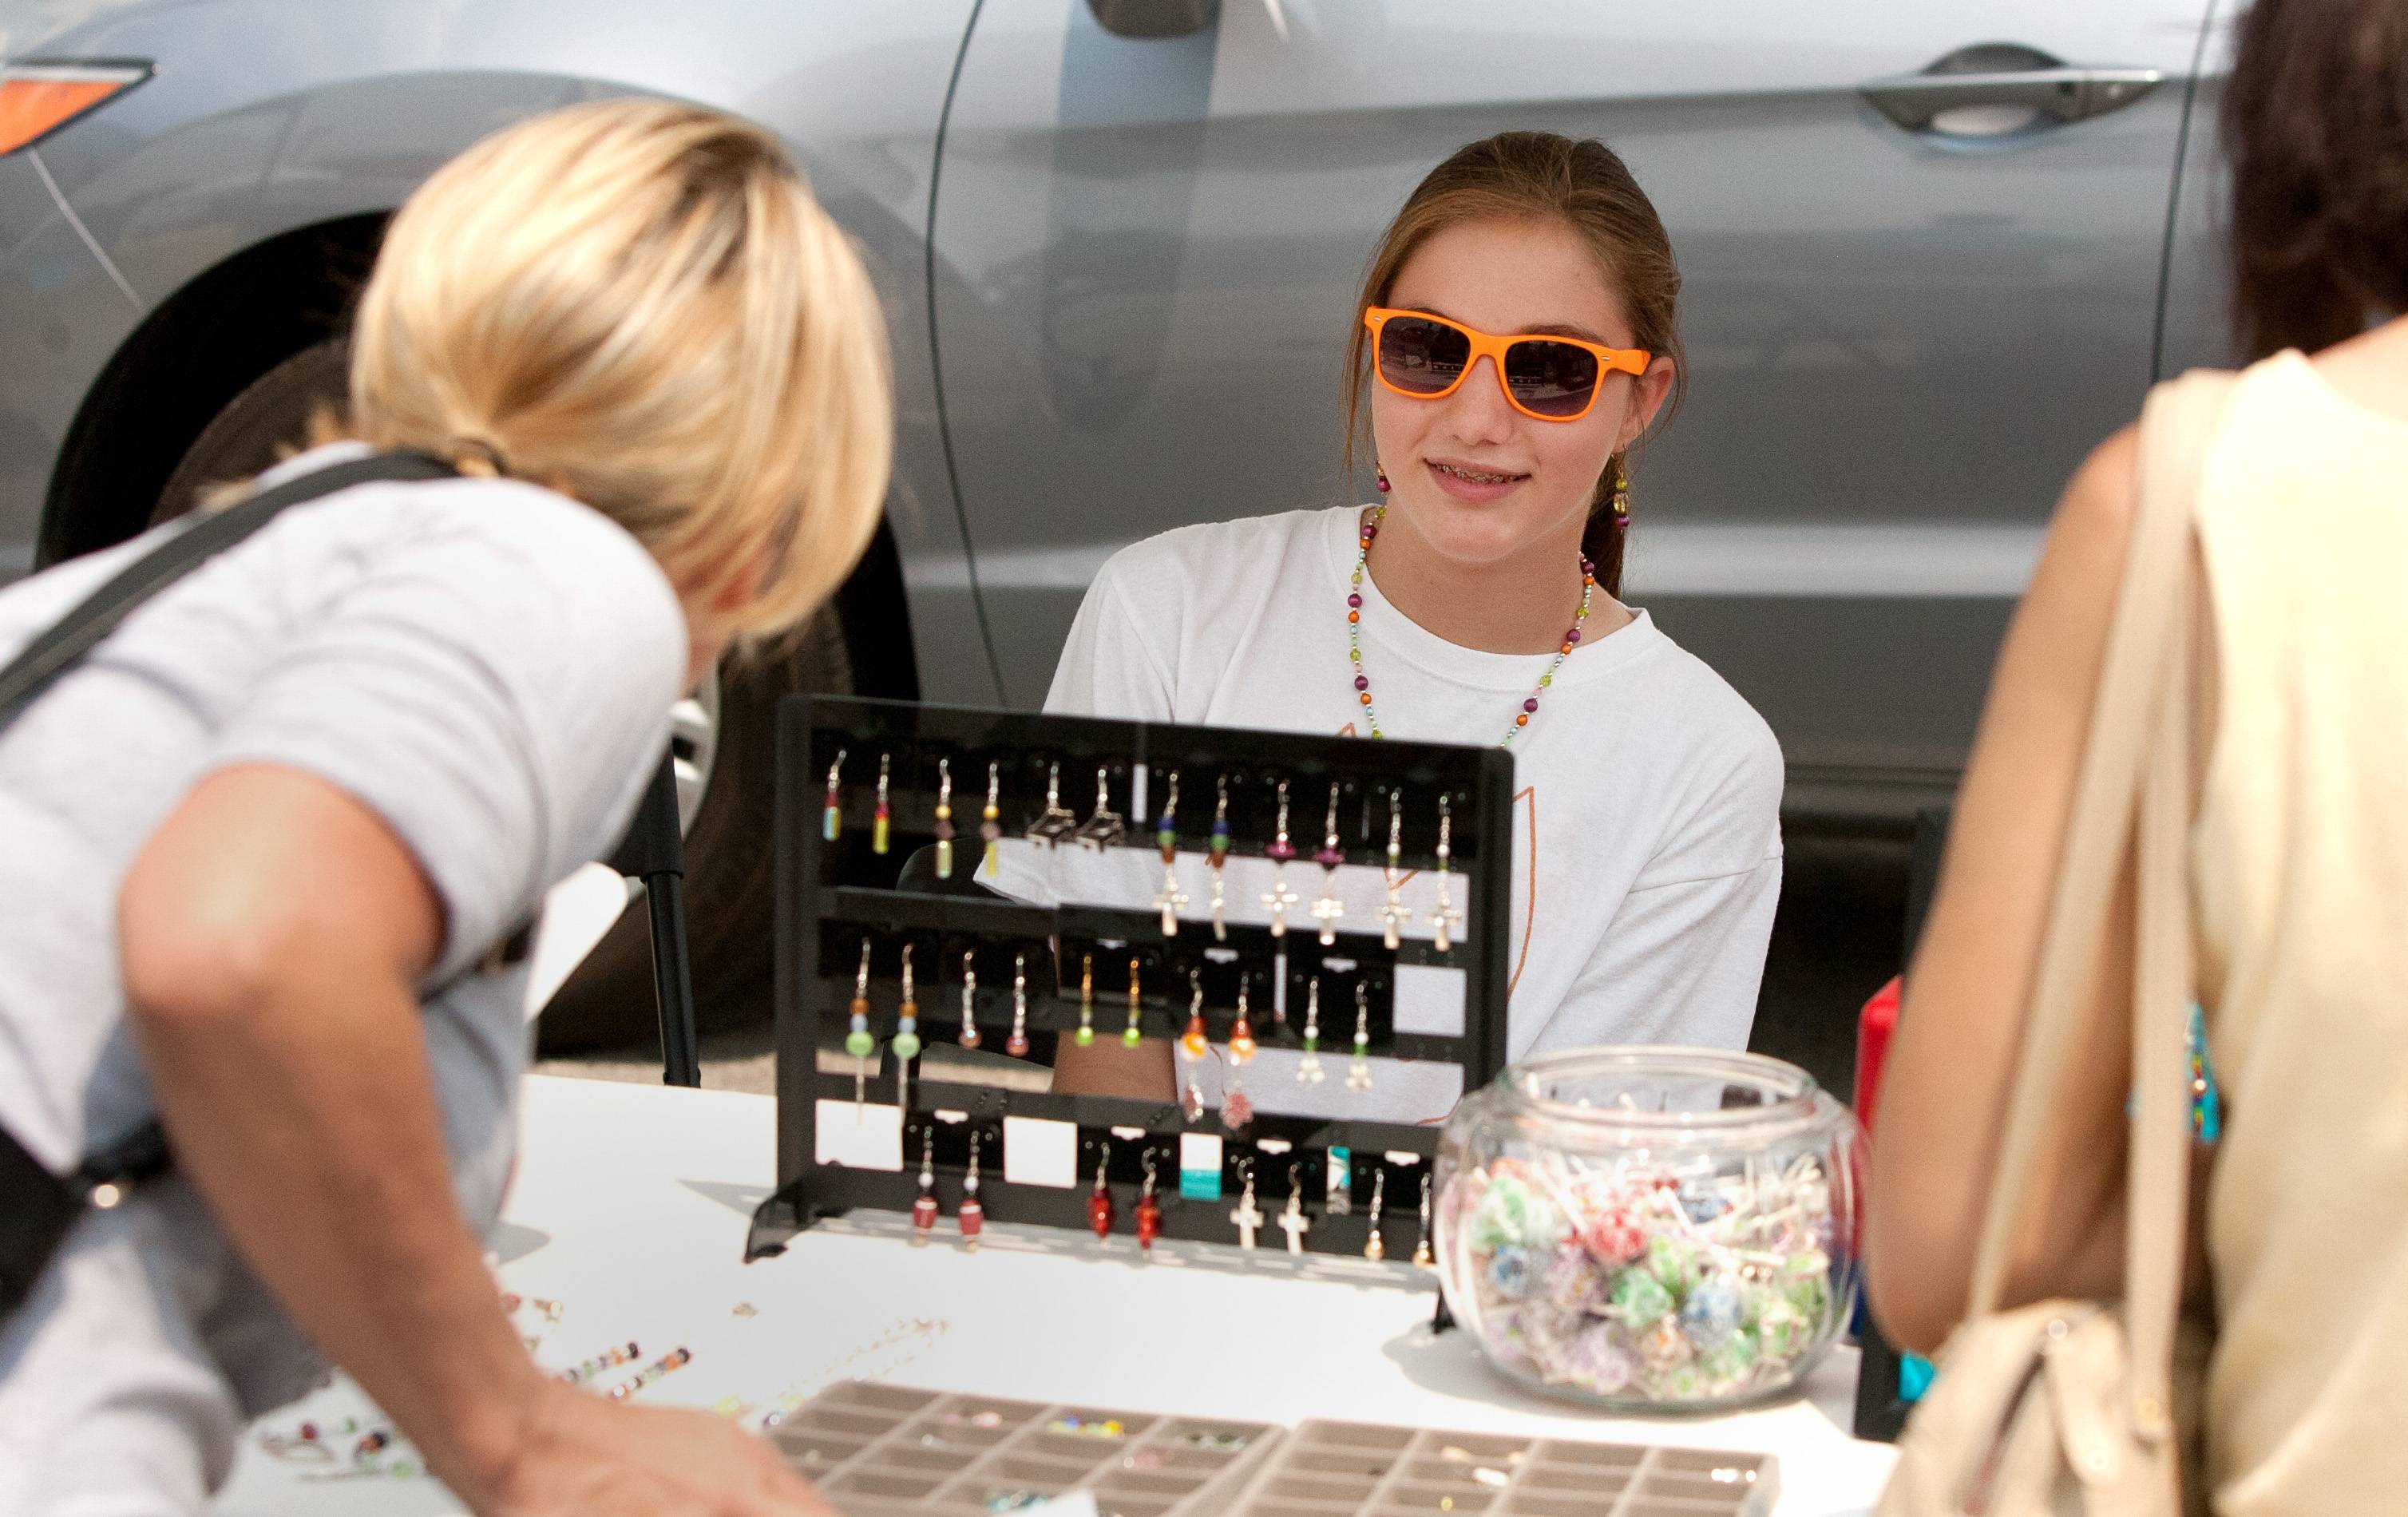 Customers talk to April Kochman who sells jewelry as part of the city's Young Entrepreneurs program at the Aurora farmers markets.